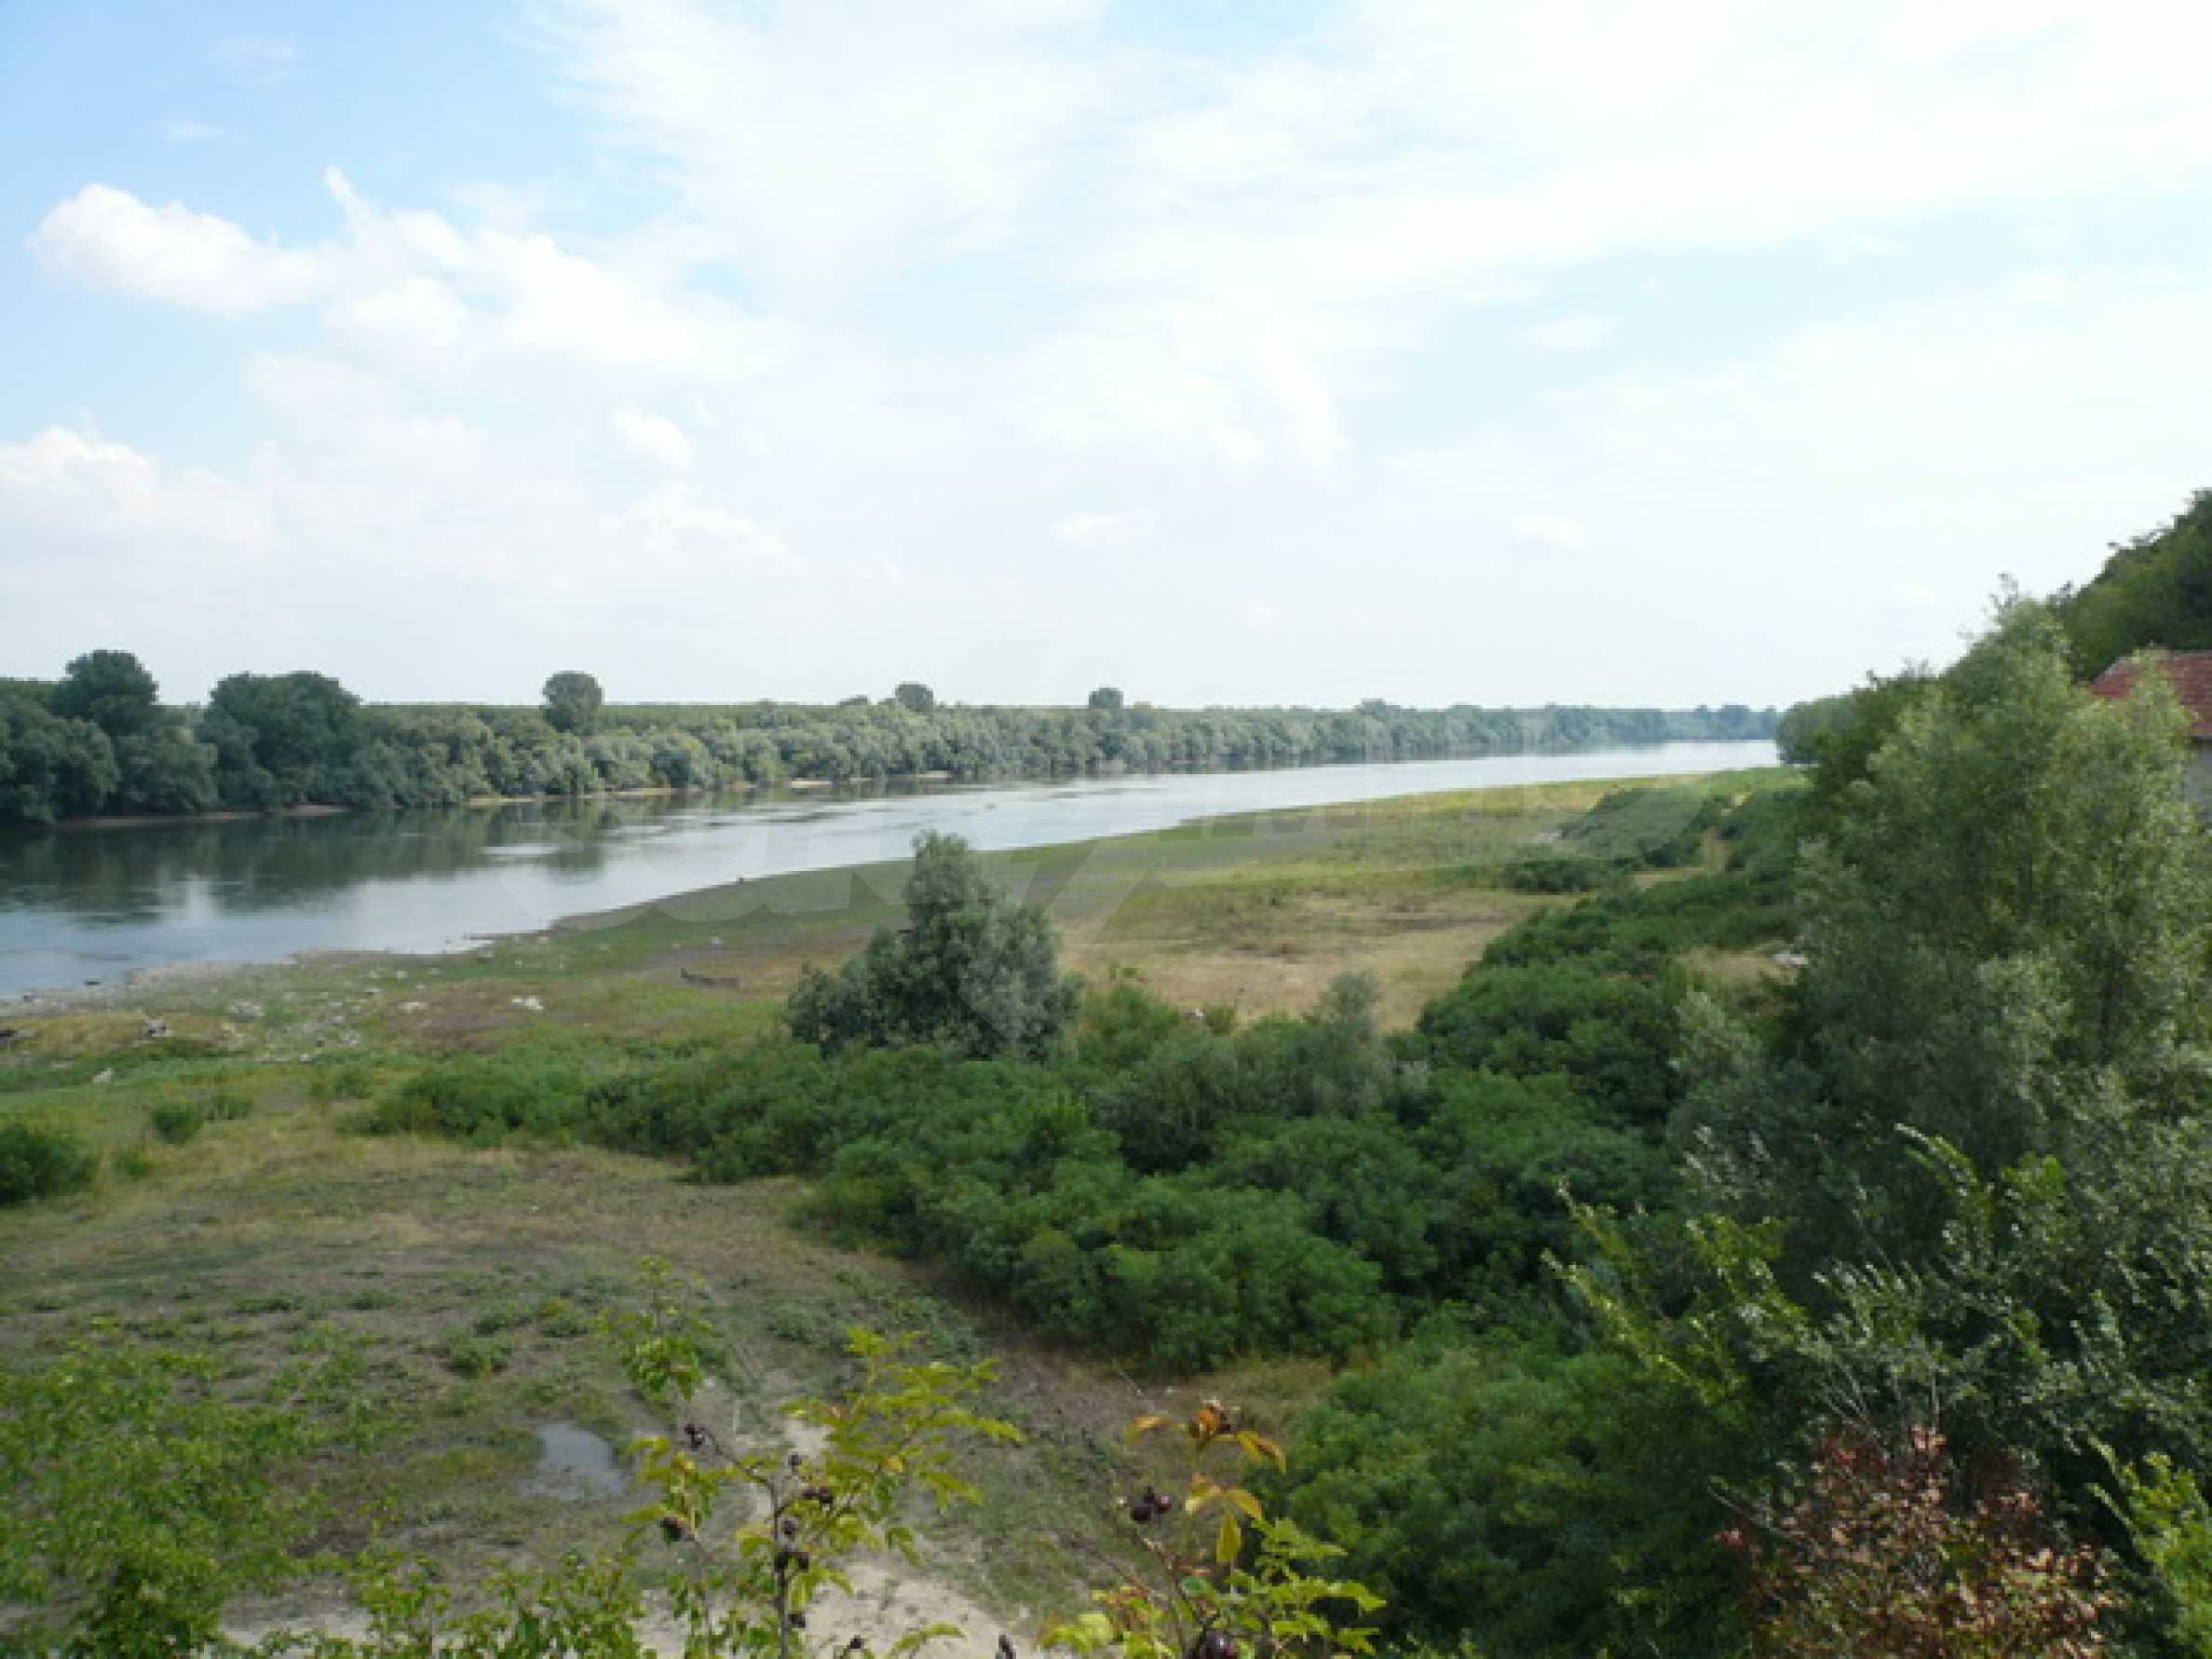 Property on the bank of the River Danube